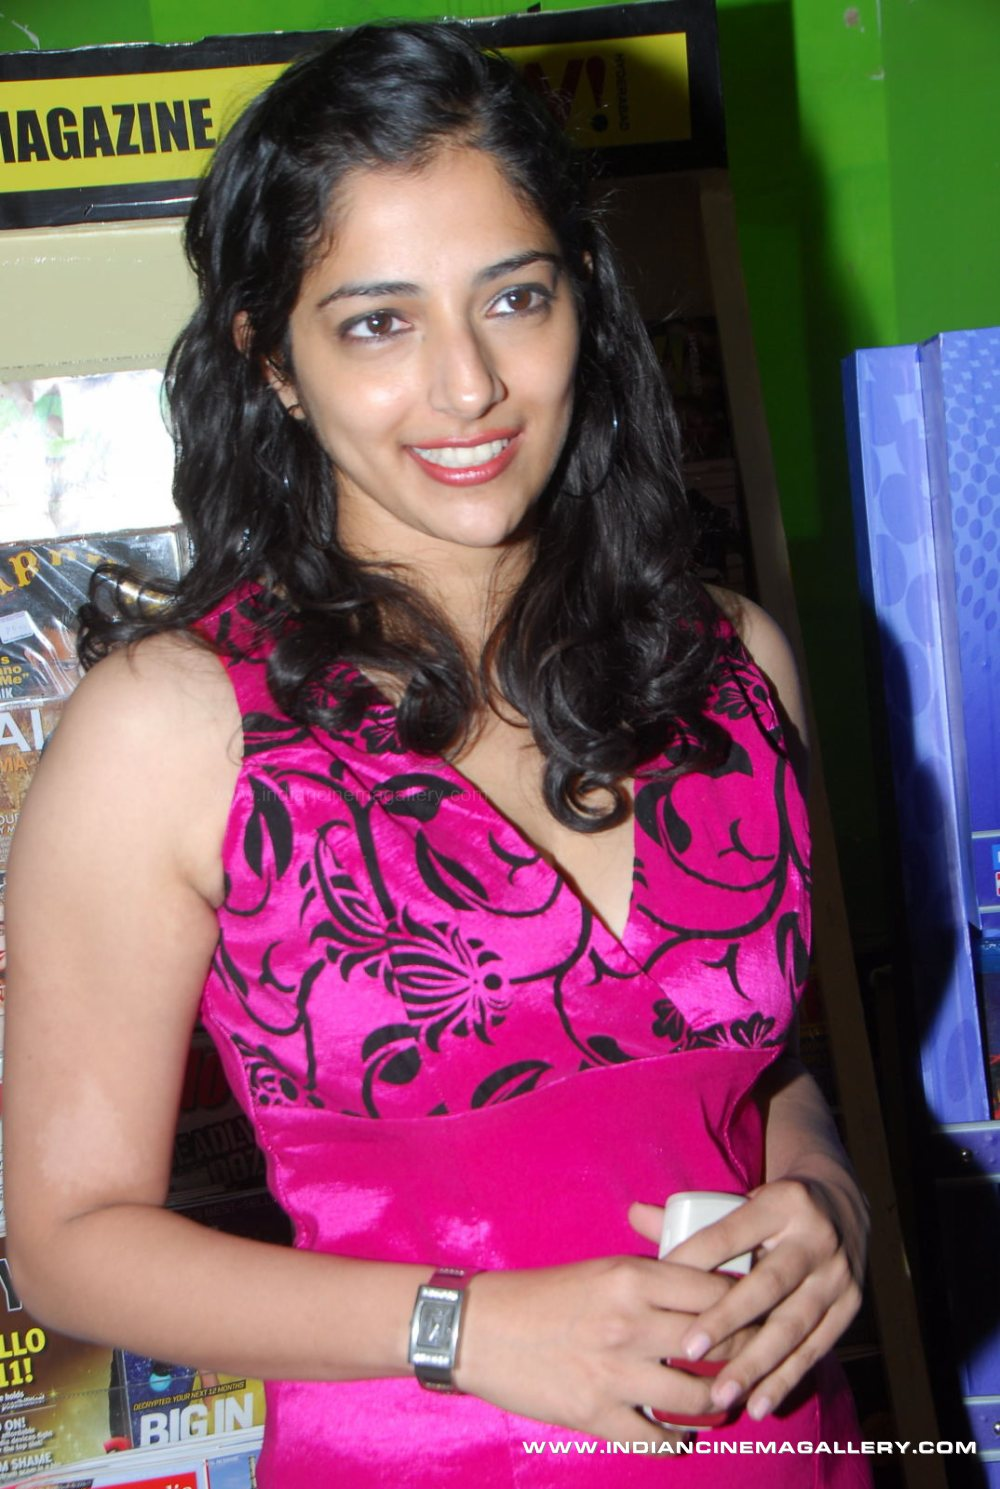 http://rkwebdirectory.com/articles/Nishanthi-Actress-Spicy-Galley